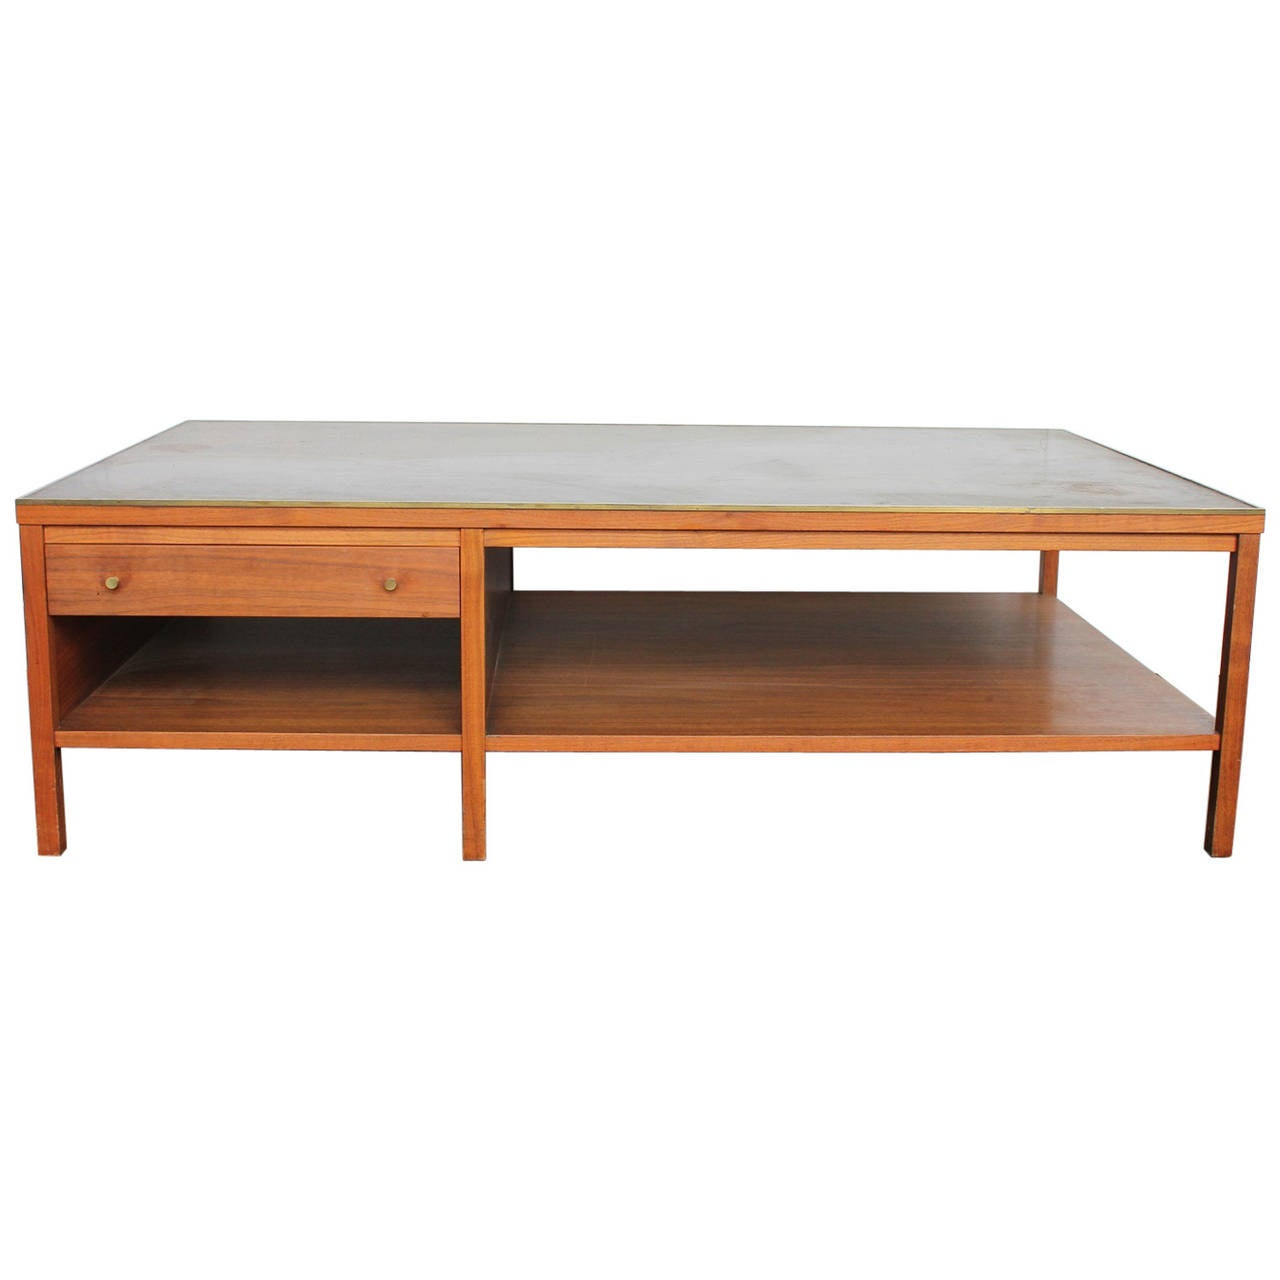 Leather top coffee table by paul mccobb for calvin group for sale at 1stdibs Coffee table with leather top